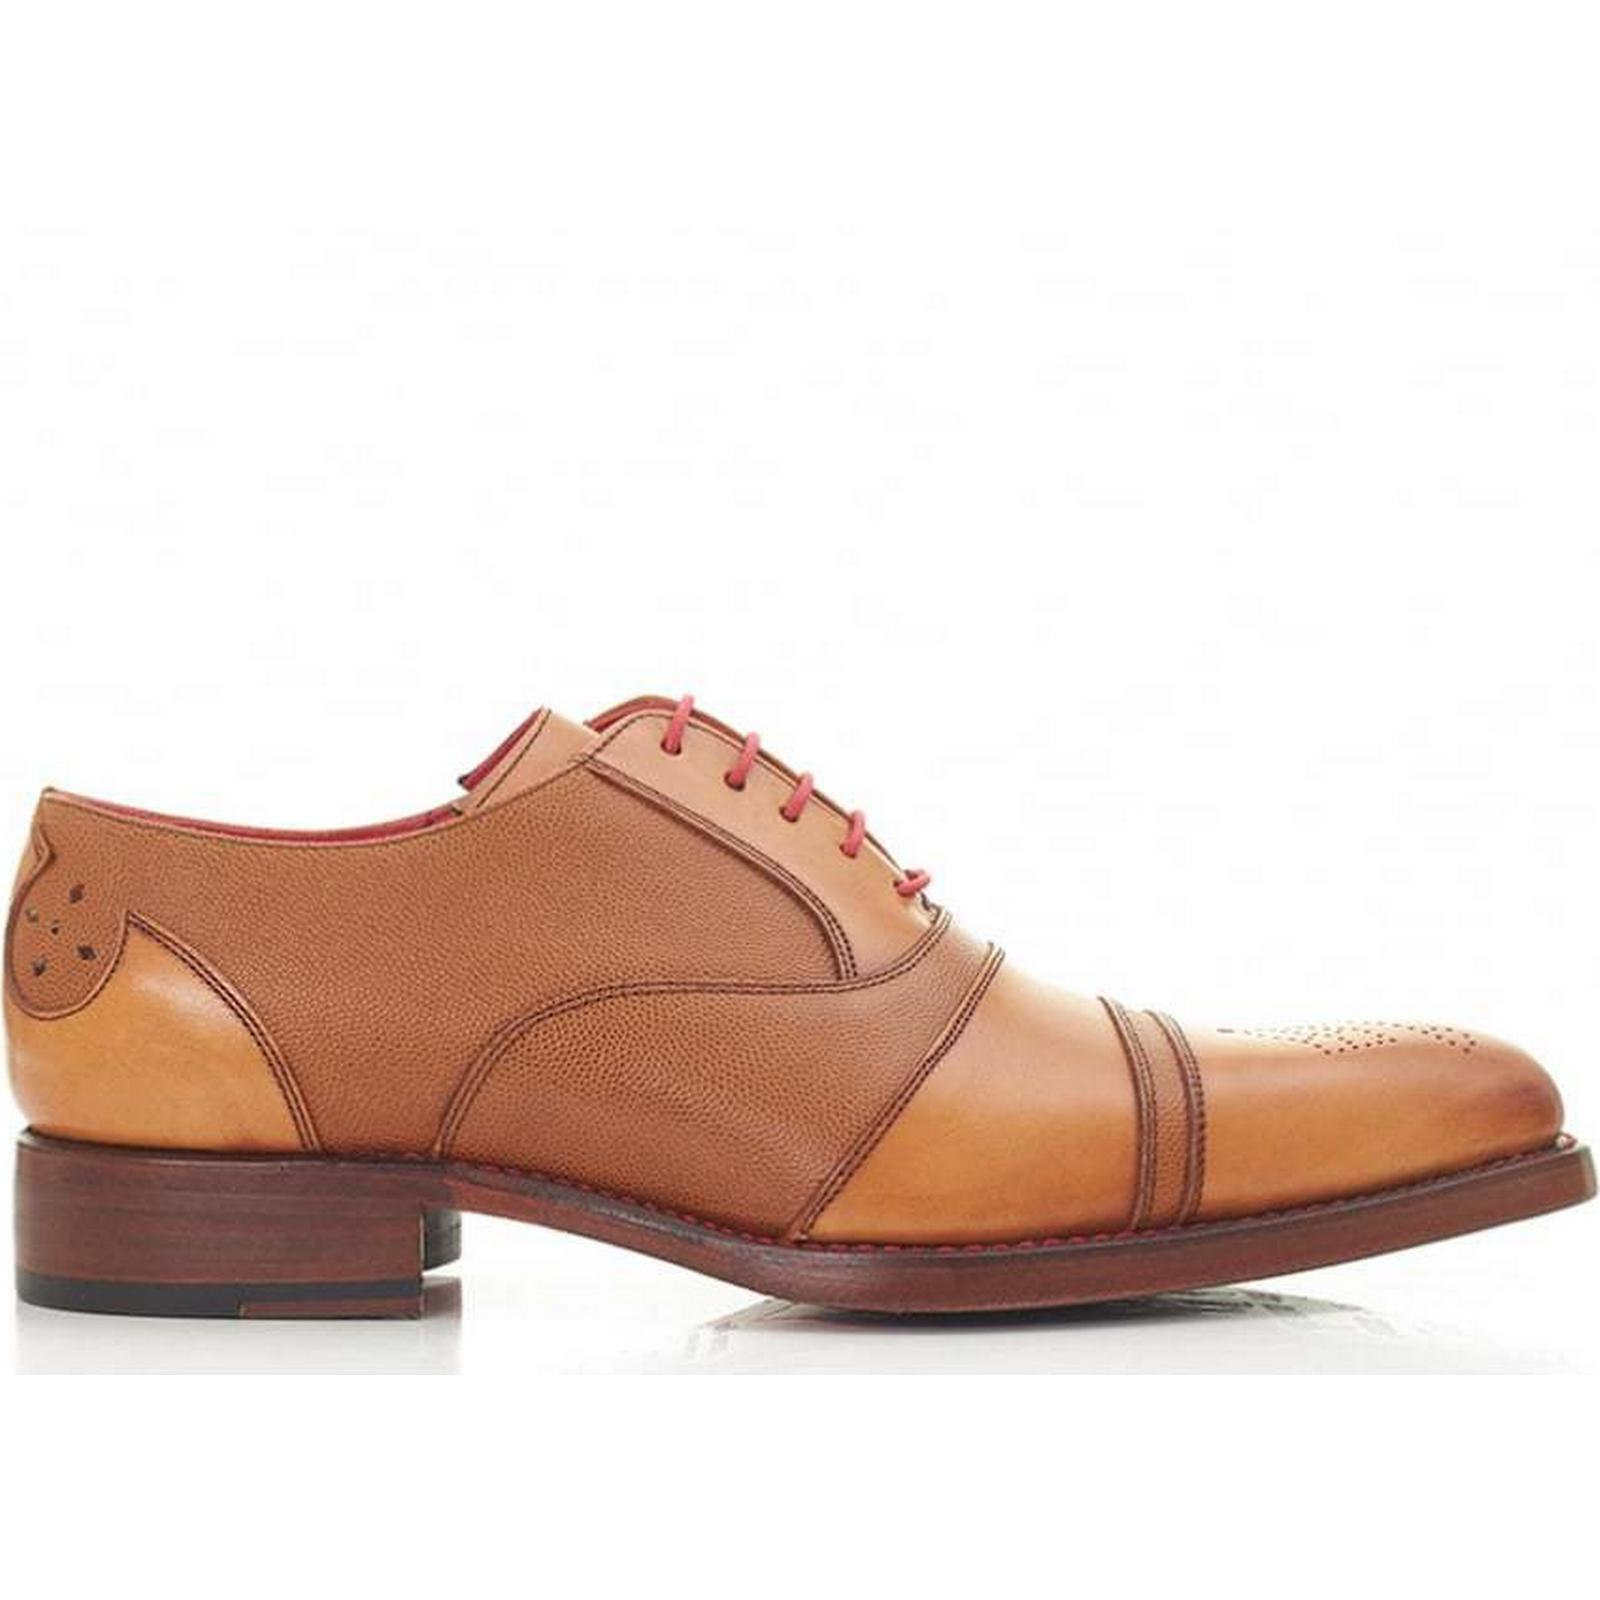 Jeffery West Mainline Oxford Size: Toecap Leather Shoes Colour: TAN, Size: Oxford 9 9491cb